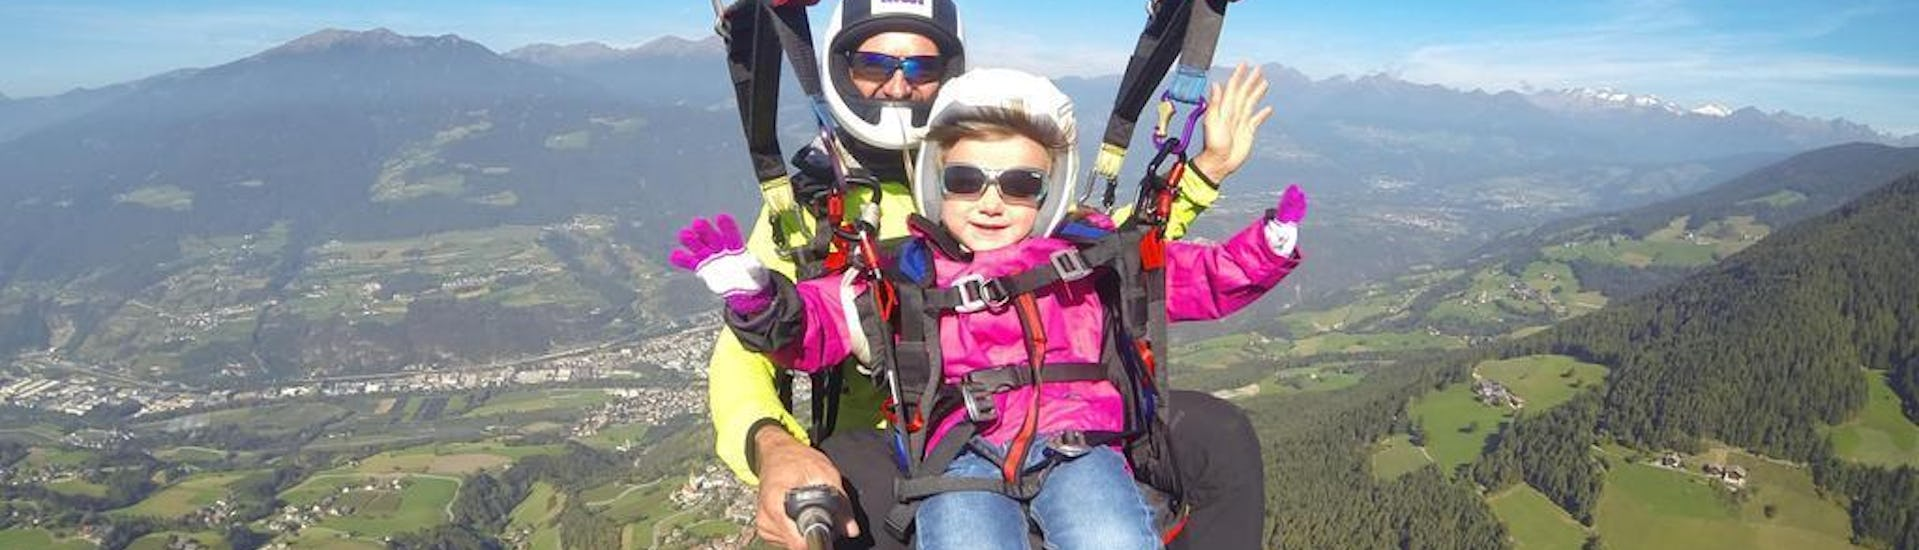 Tandem Paragliding from Plose for children